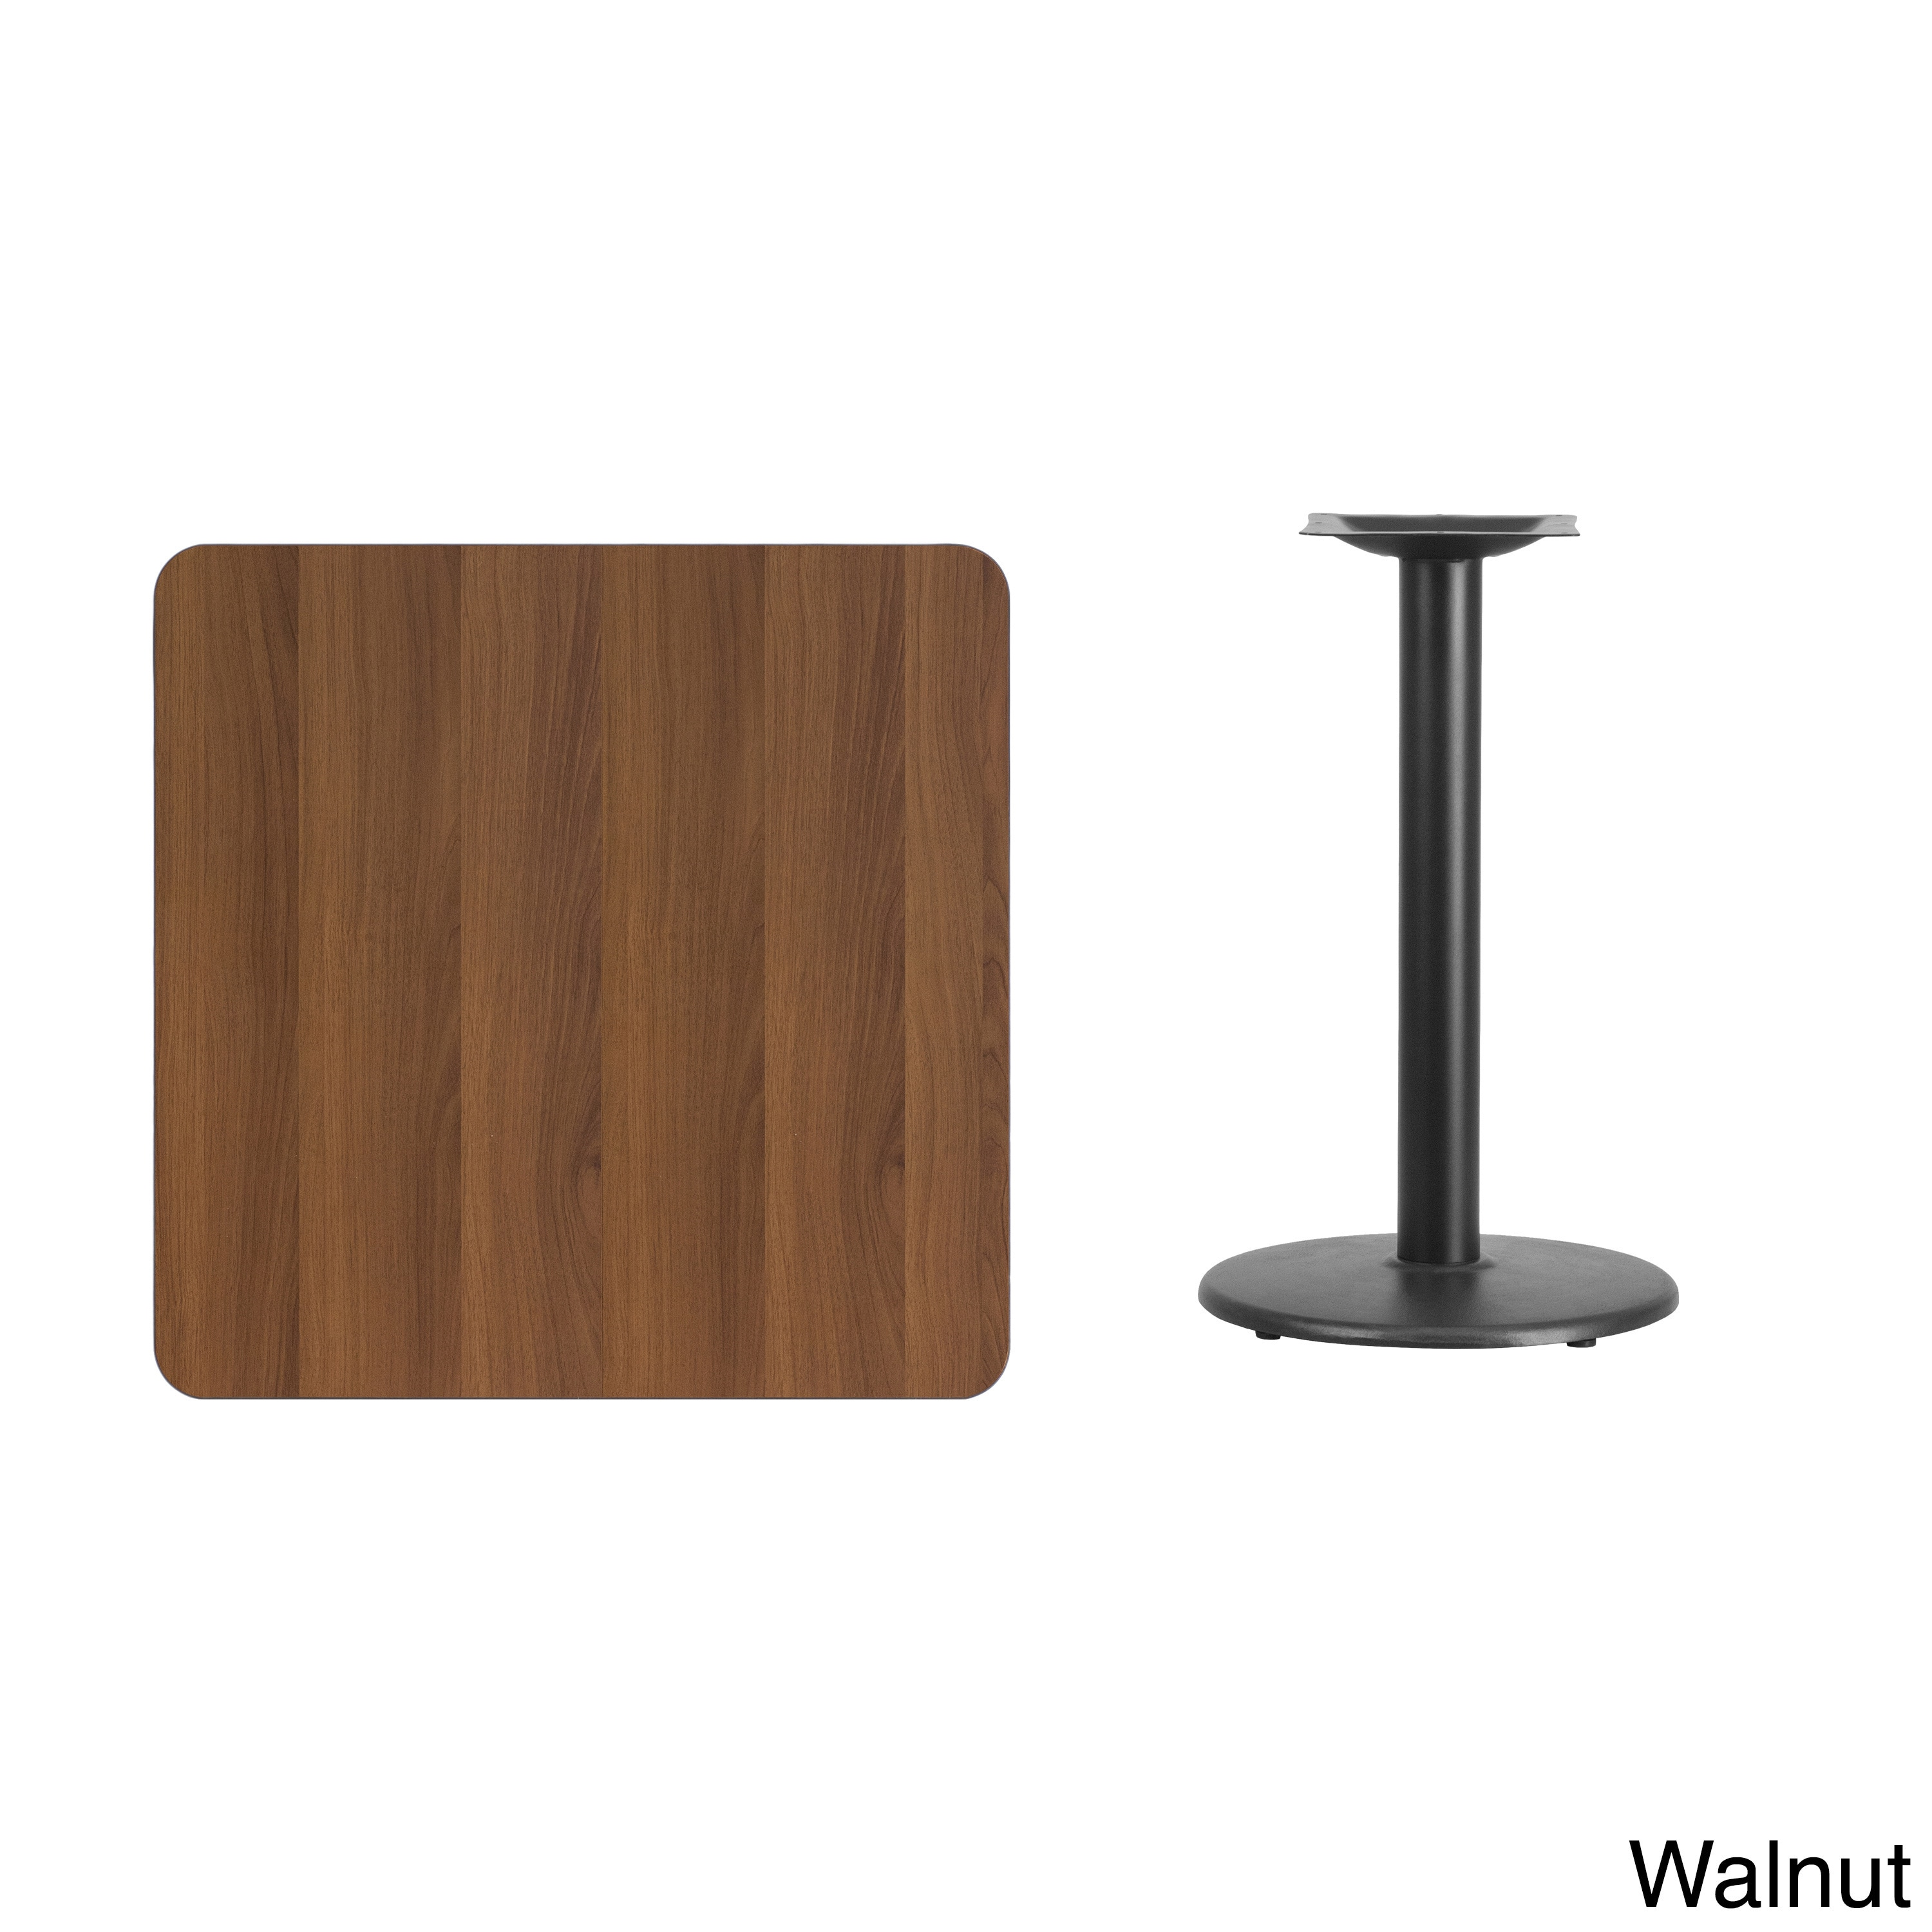 30 Inch Square Laminate Table Top With 18 Inch Round Table Height Base    Free Shipping Today   Overstock.com   17737943